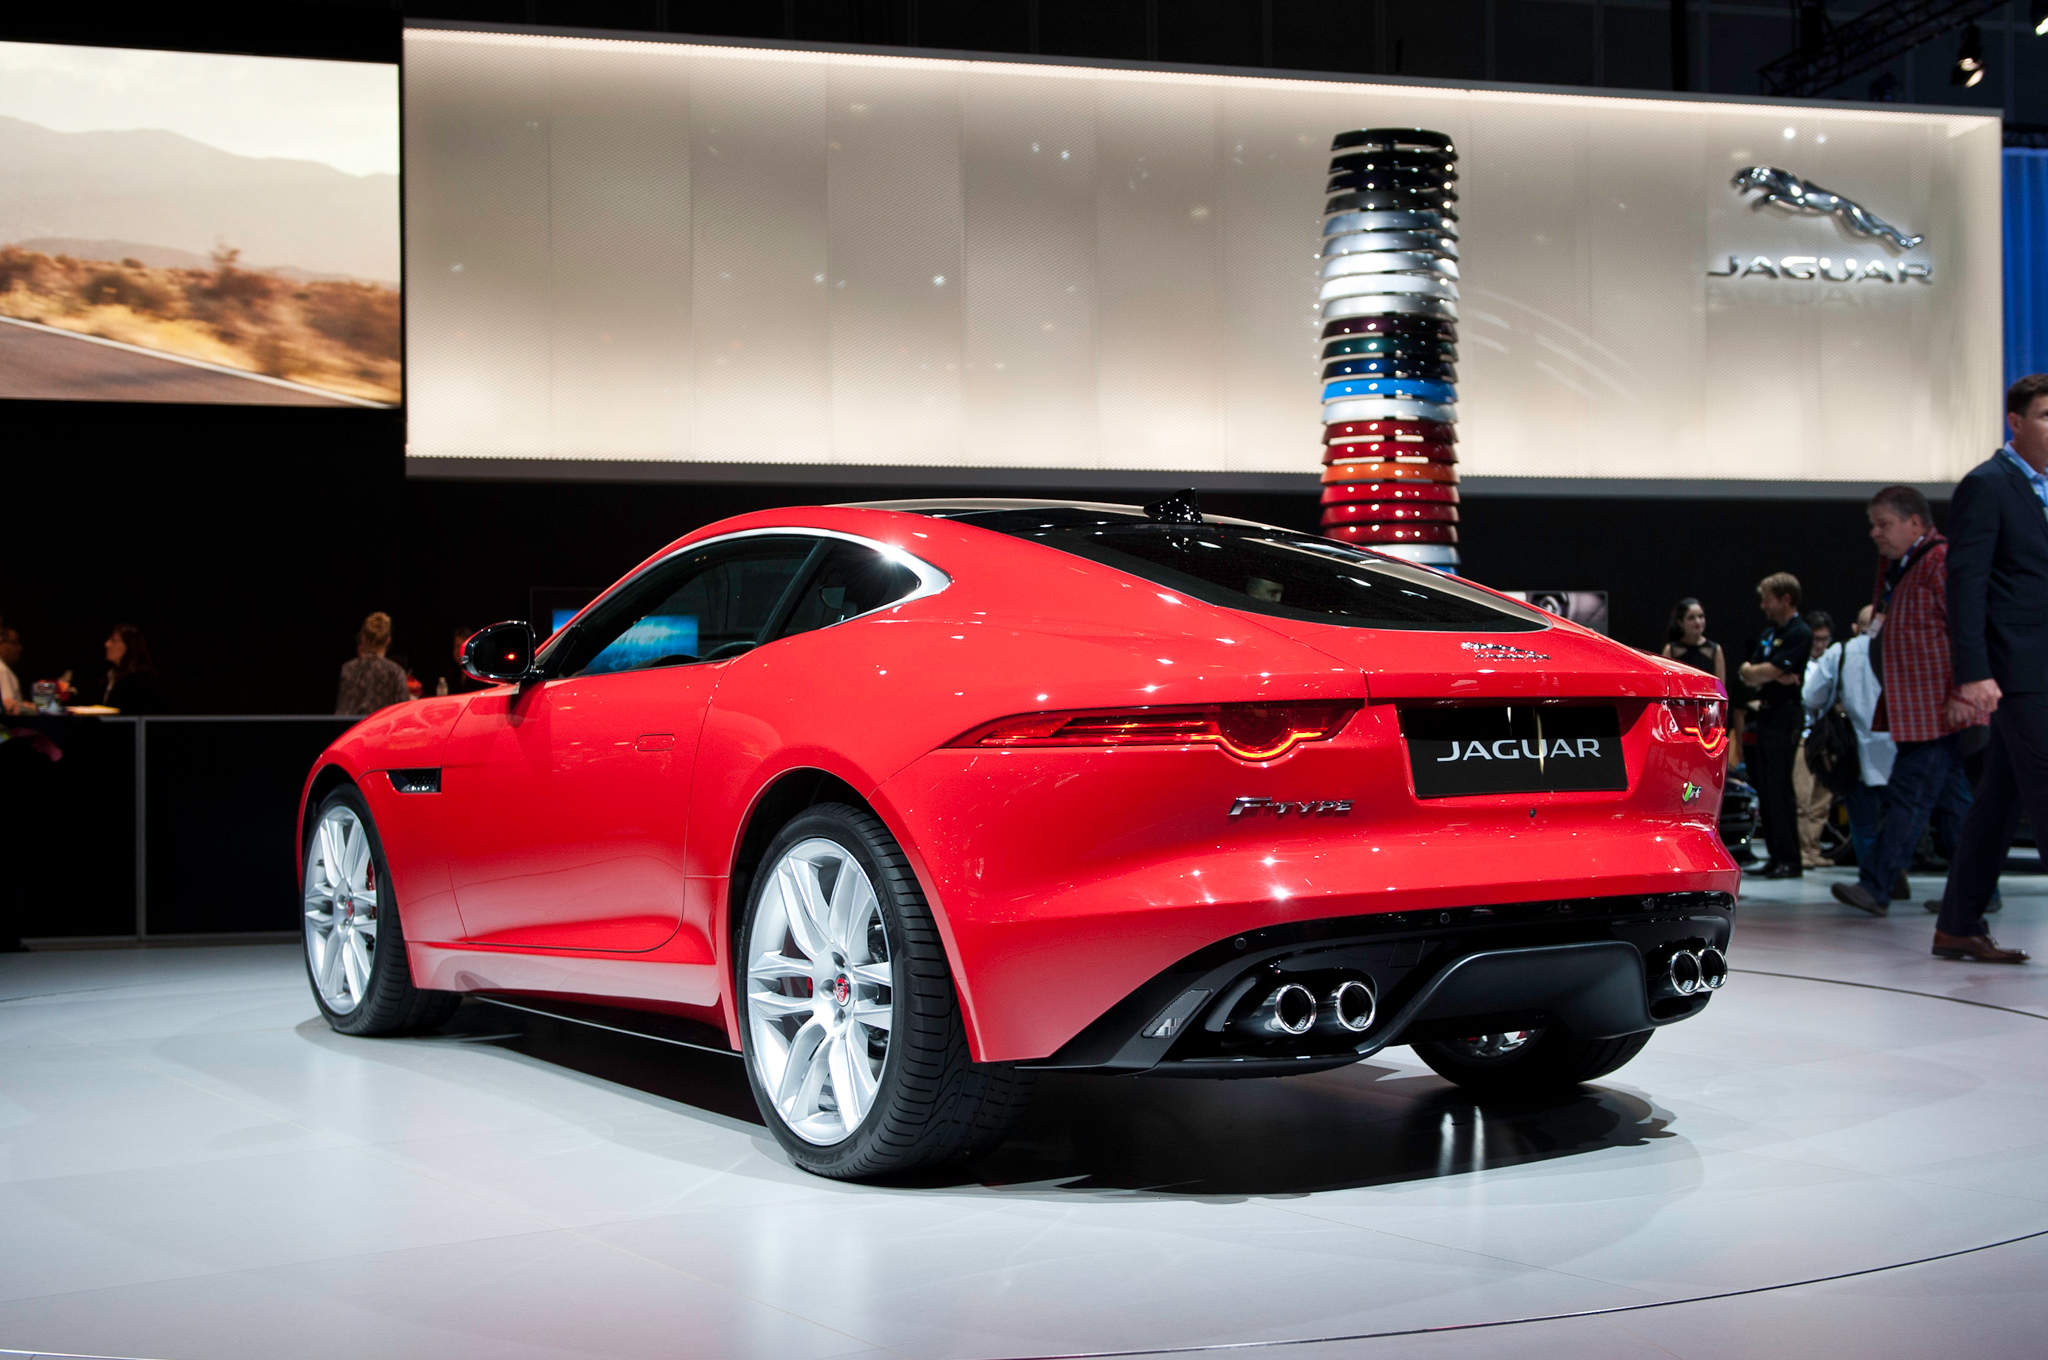 2015 Jaguar F Type Coupe Exterior Profile (View 17 of 26)